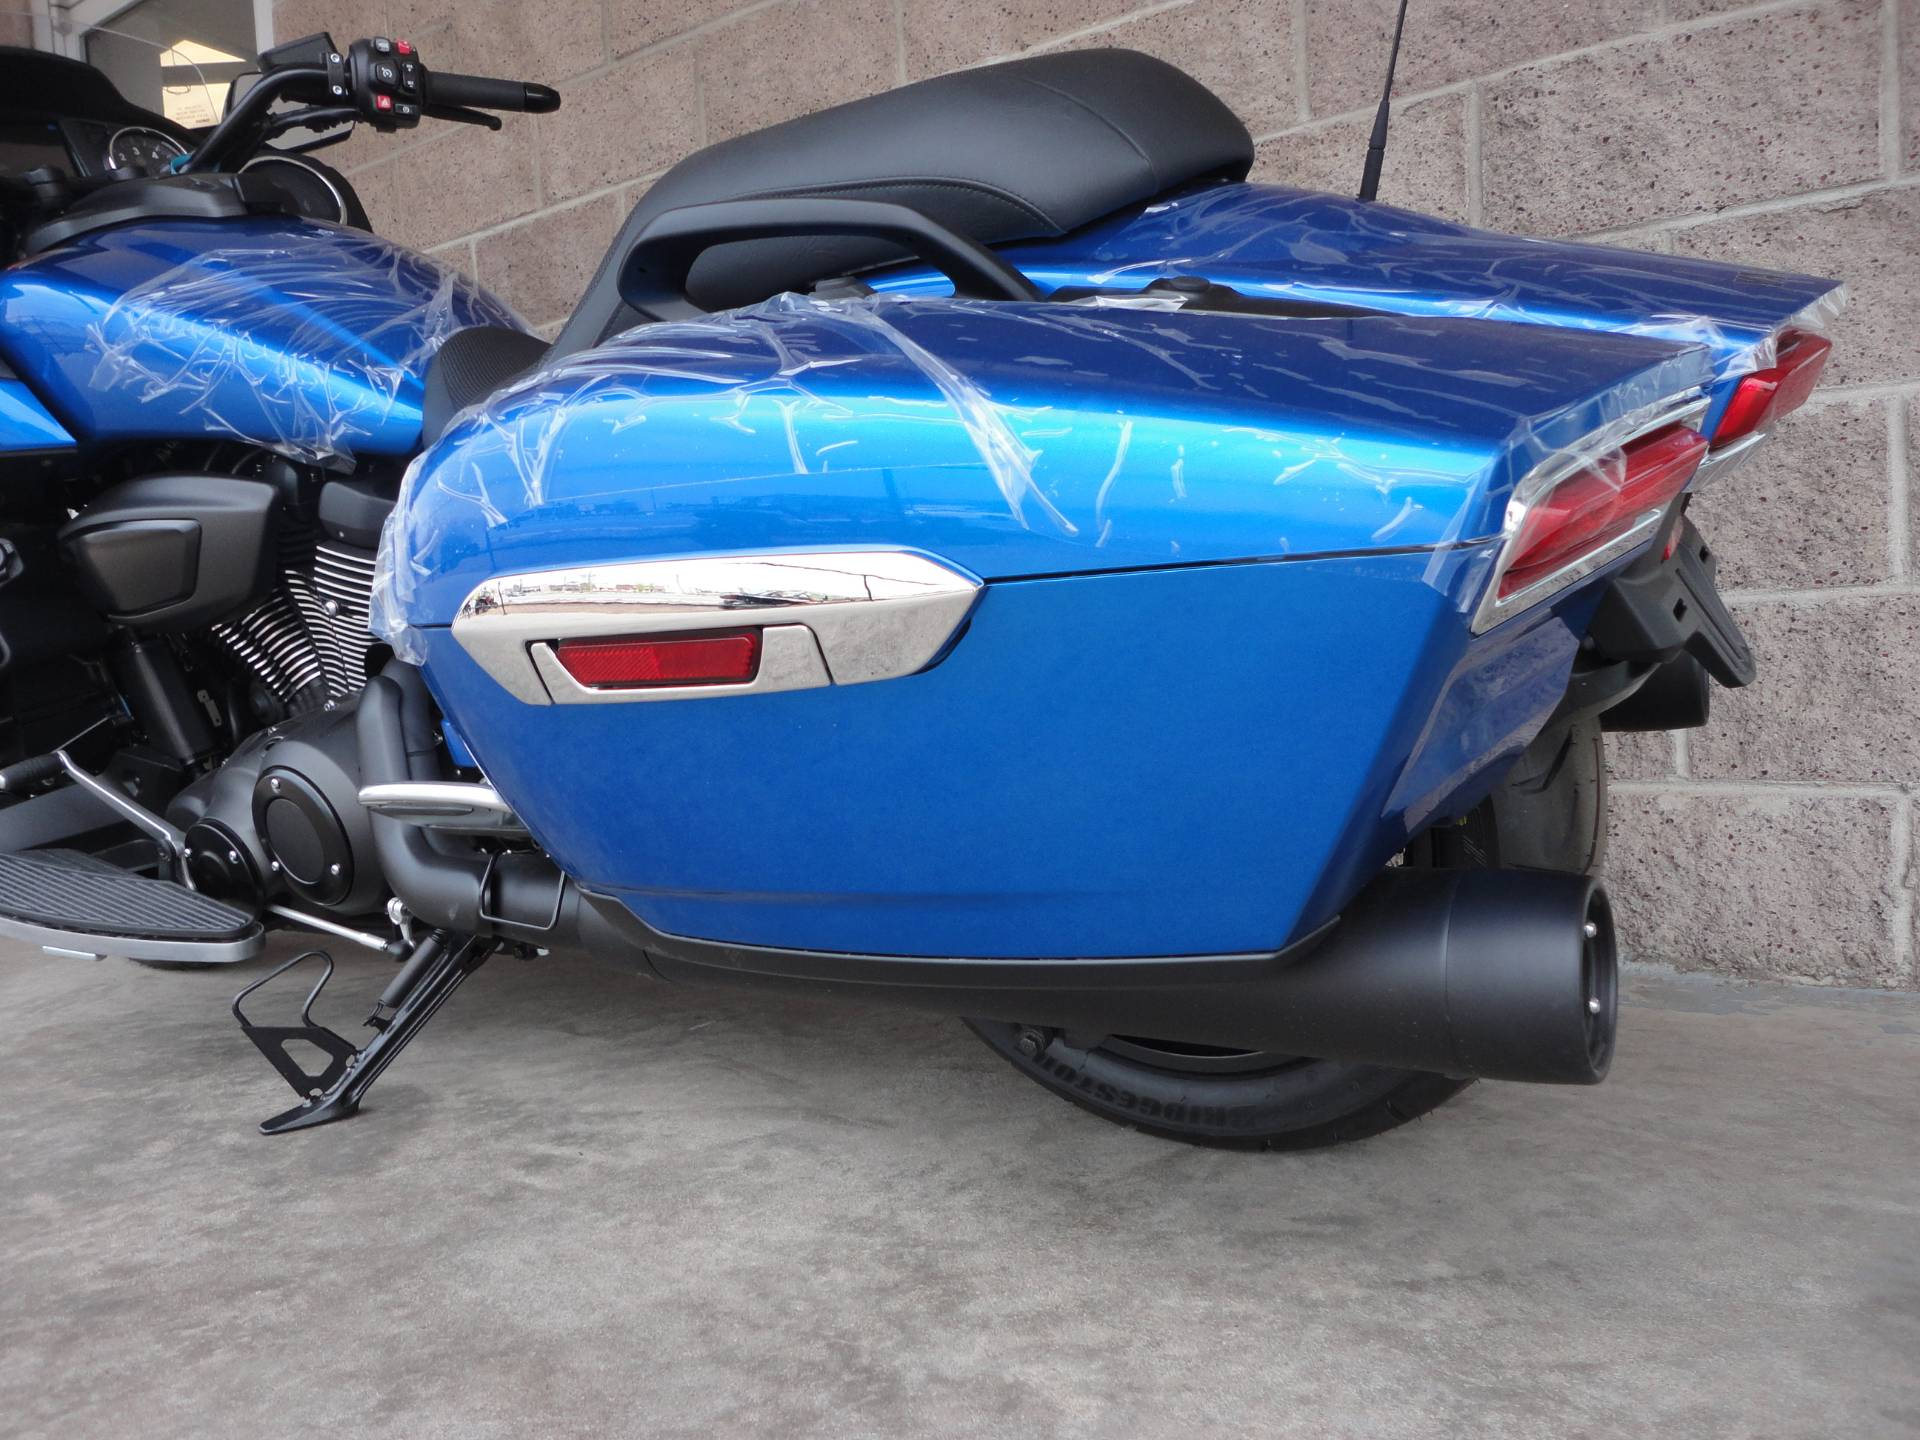 2018 Yamaha Star Eluder in Denver, Colorado